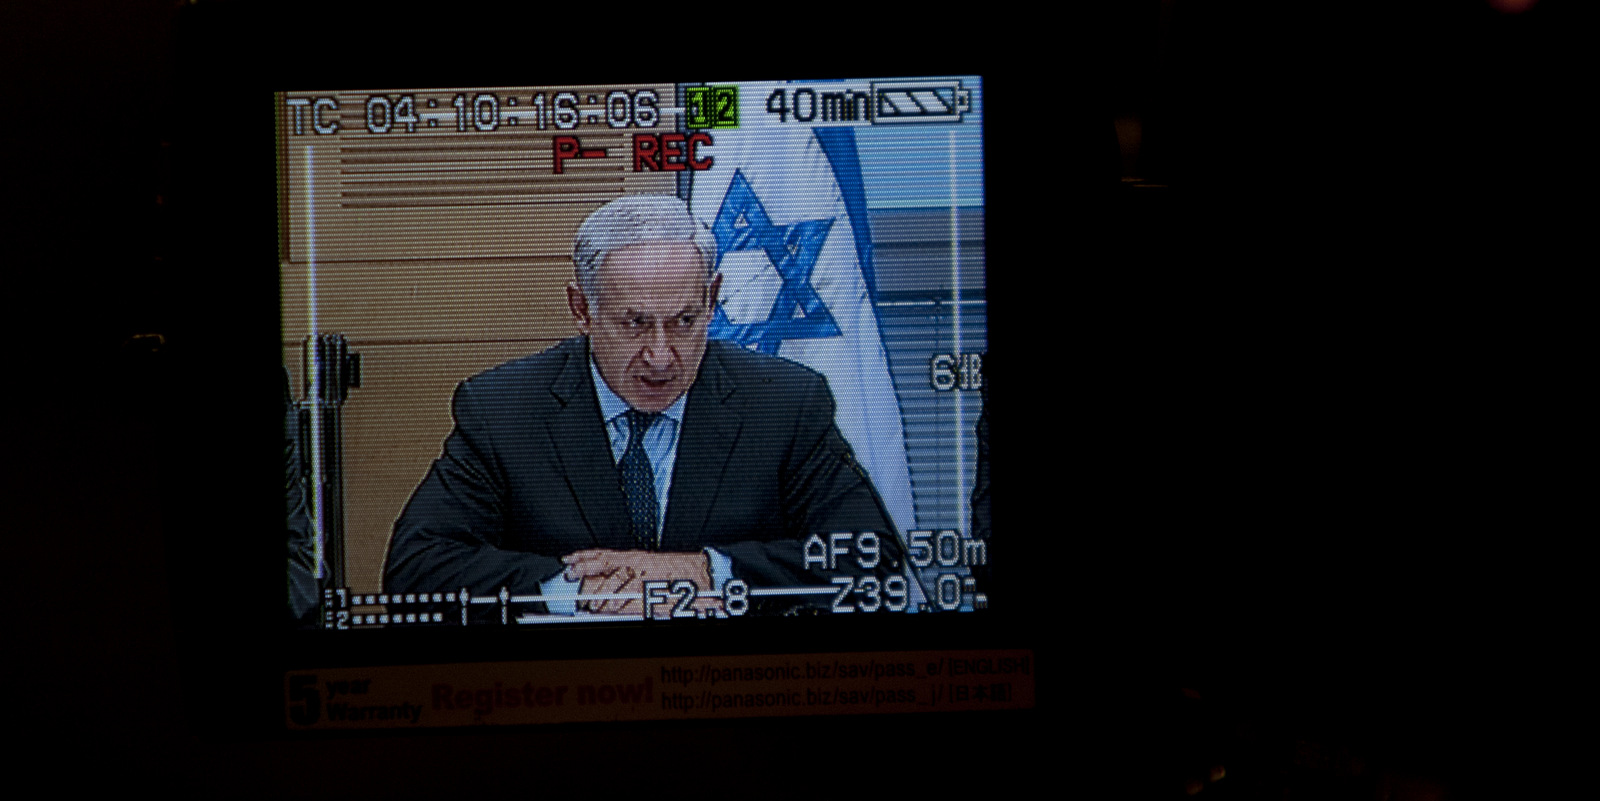 Media Cover-up: Shielding Israel As a Matter of Policy